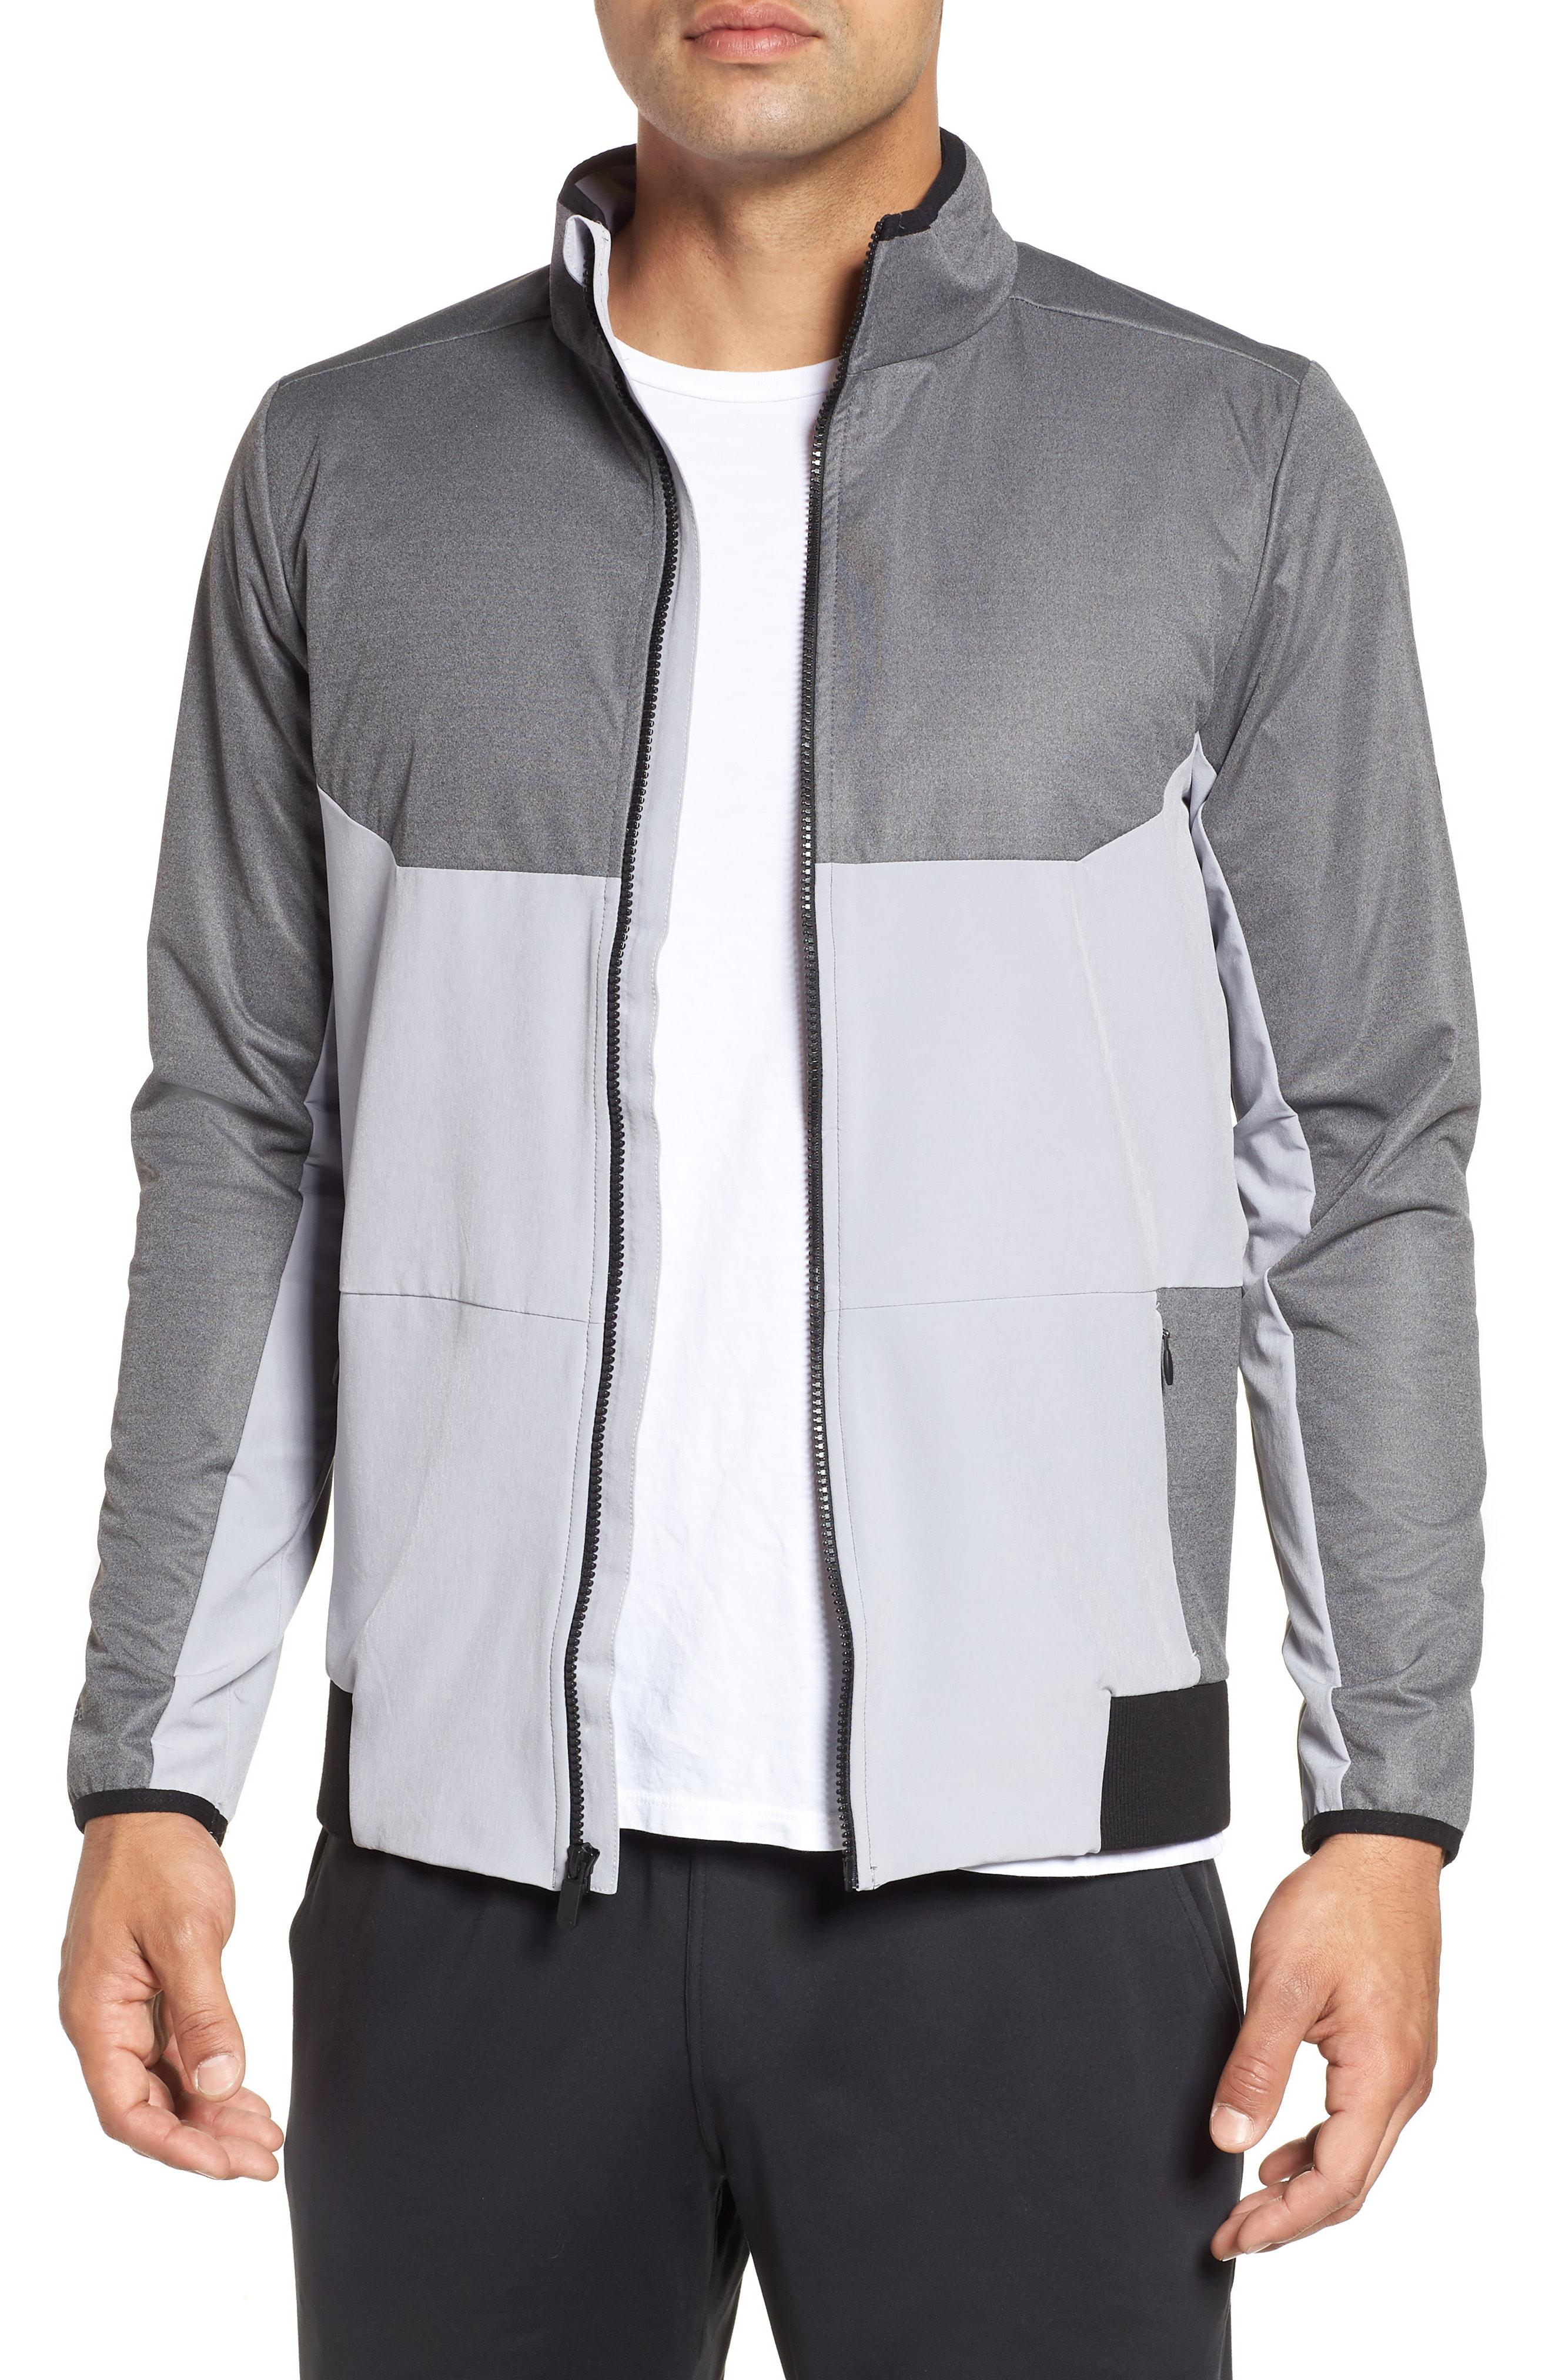 fd838834bd07 Lyst - Under Armour Gore Windstopper Full Zip Jacket in Gray for Men